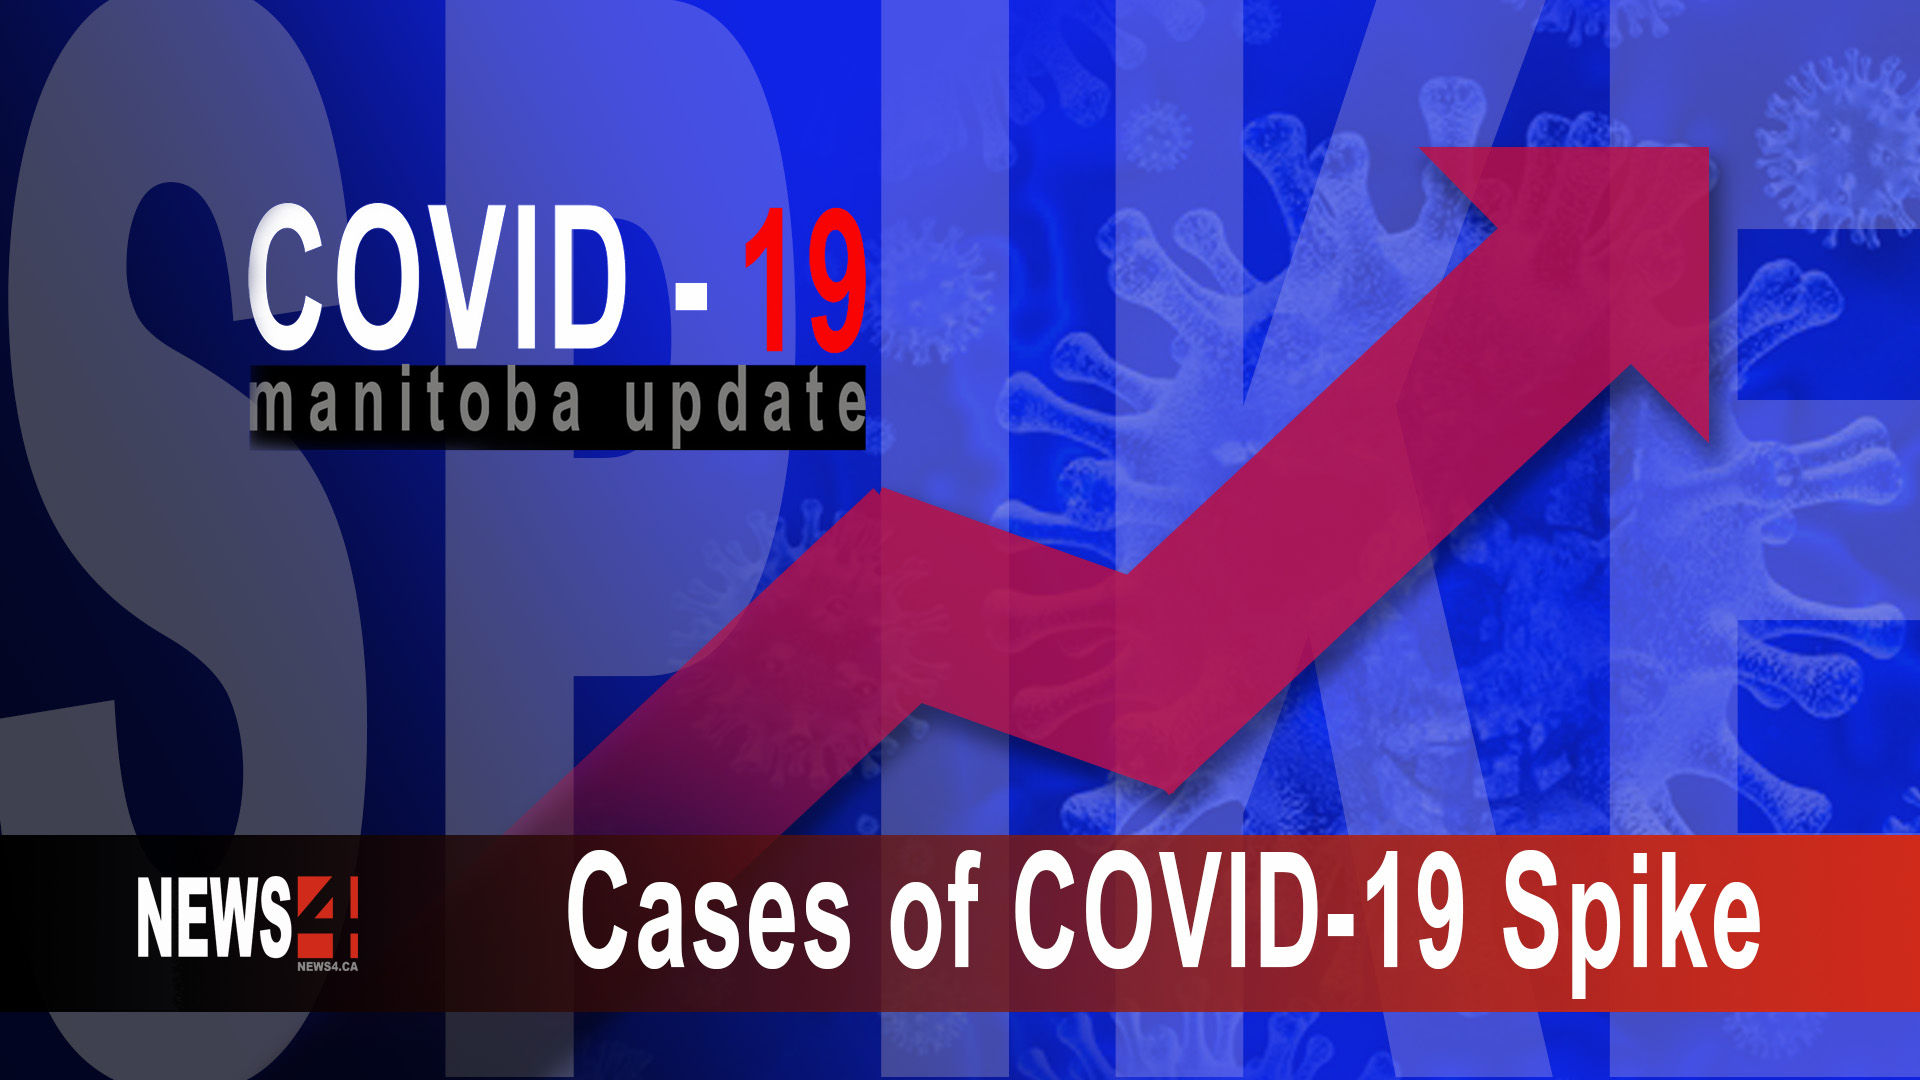 COVID-19 cases spike in Winnipeg with 29 new cases